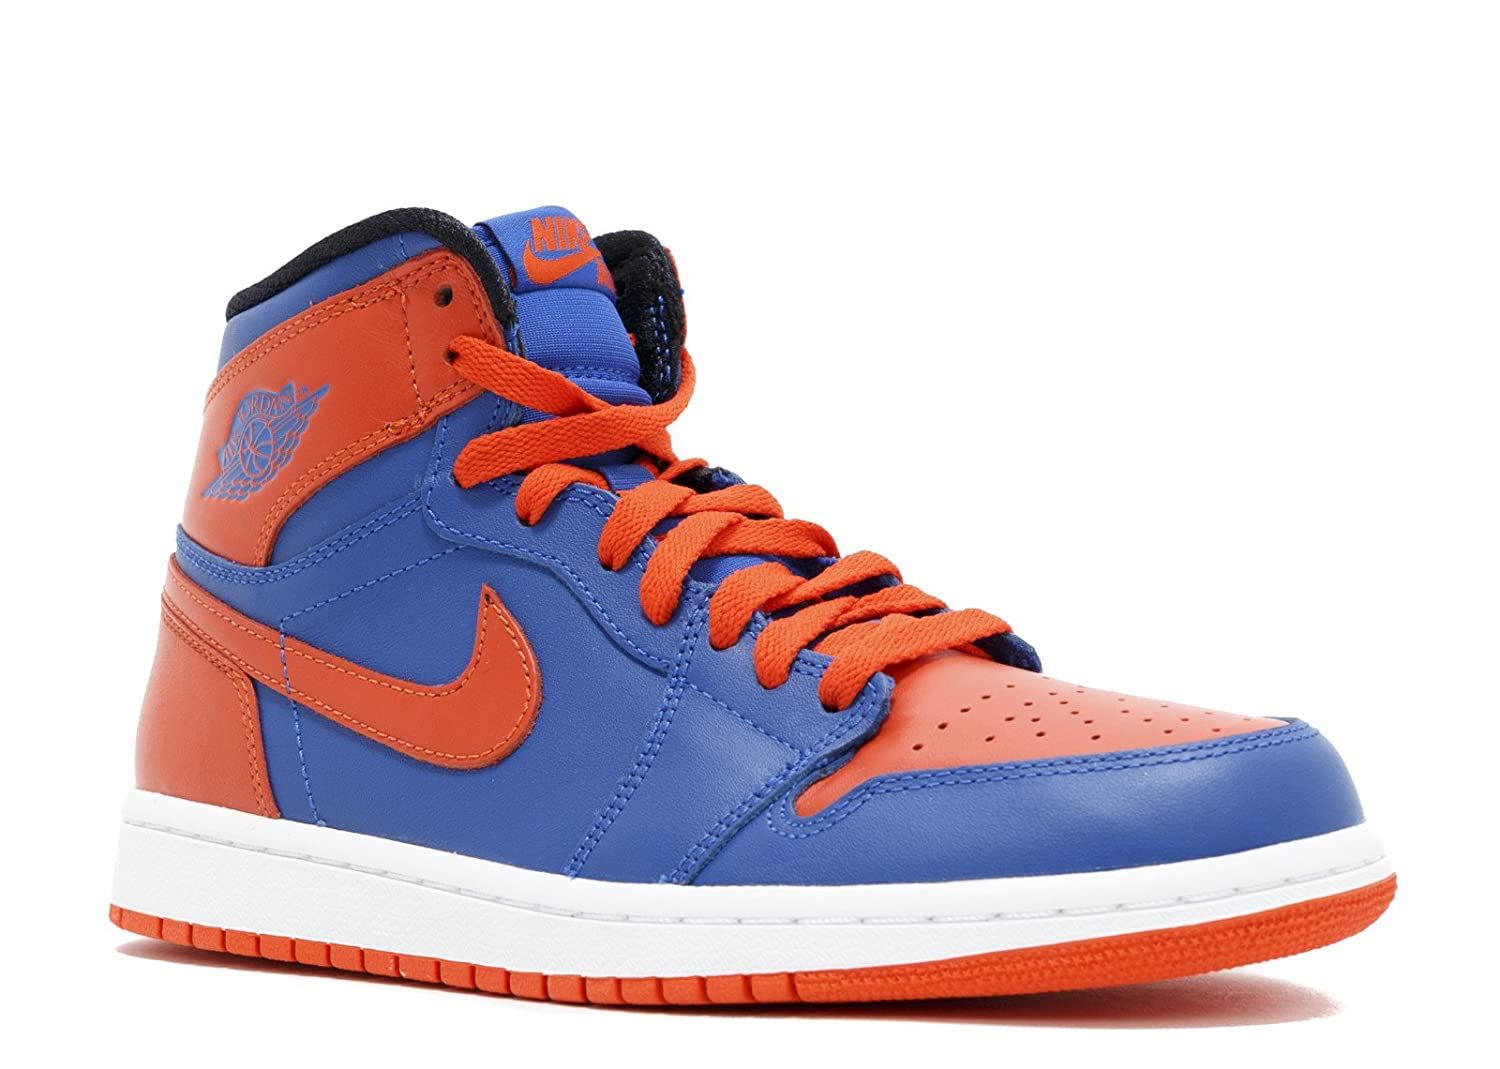 s Air Jordan 1 Retro Hoch OG Knicks Leder-Basketball-Schuhe  9|Game Royal, Team Orange-gm Ryl